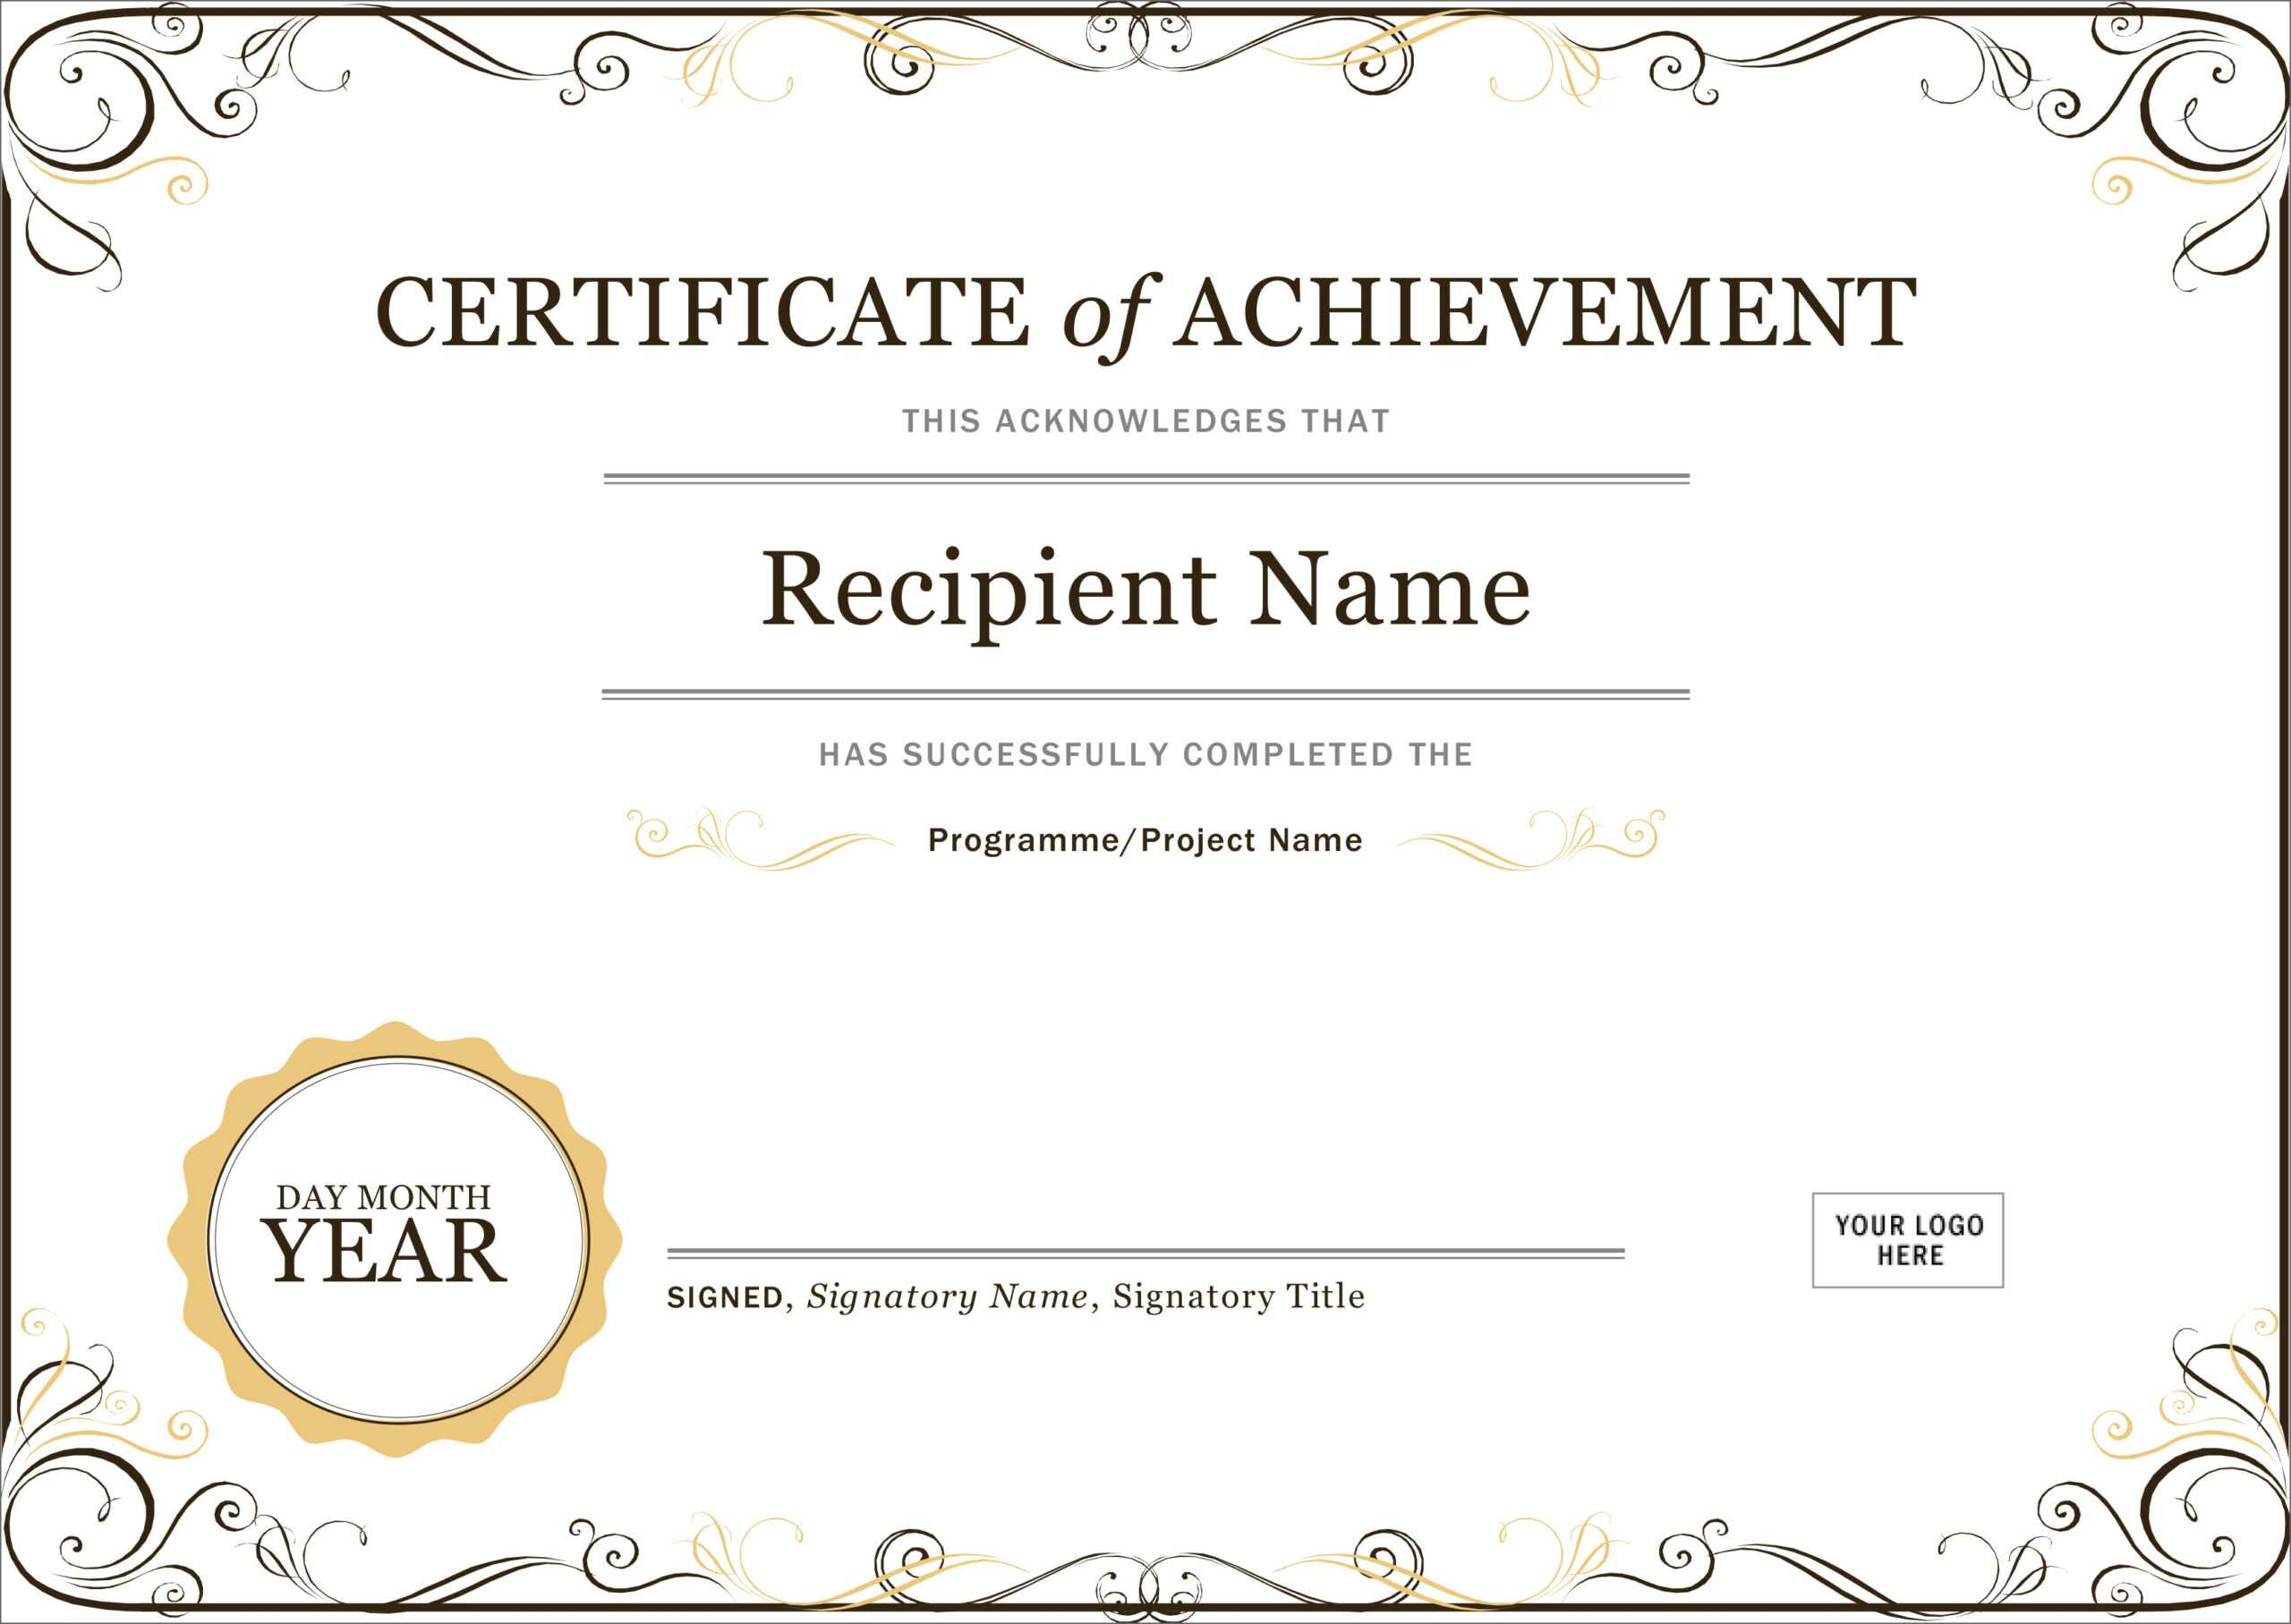 50 Free Creative Blank Certificate Templates In Psd Regarding Student Of The Year Award Certificate Templates